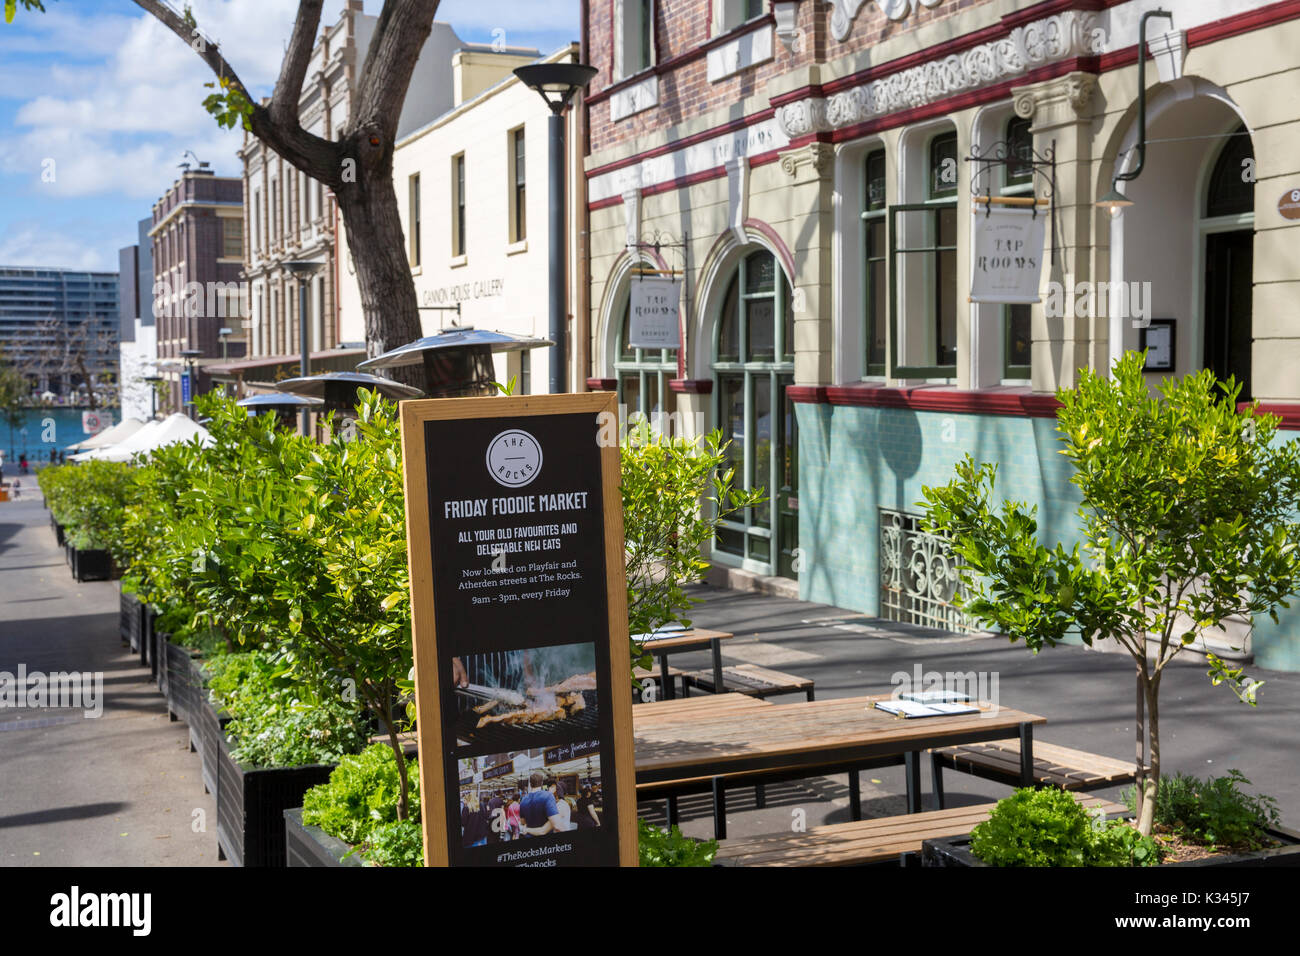 Sign for Friday foodie markets in Argyle street The Rocks historic area of Sydney city centre,New South Wales,Australia - Stock Image